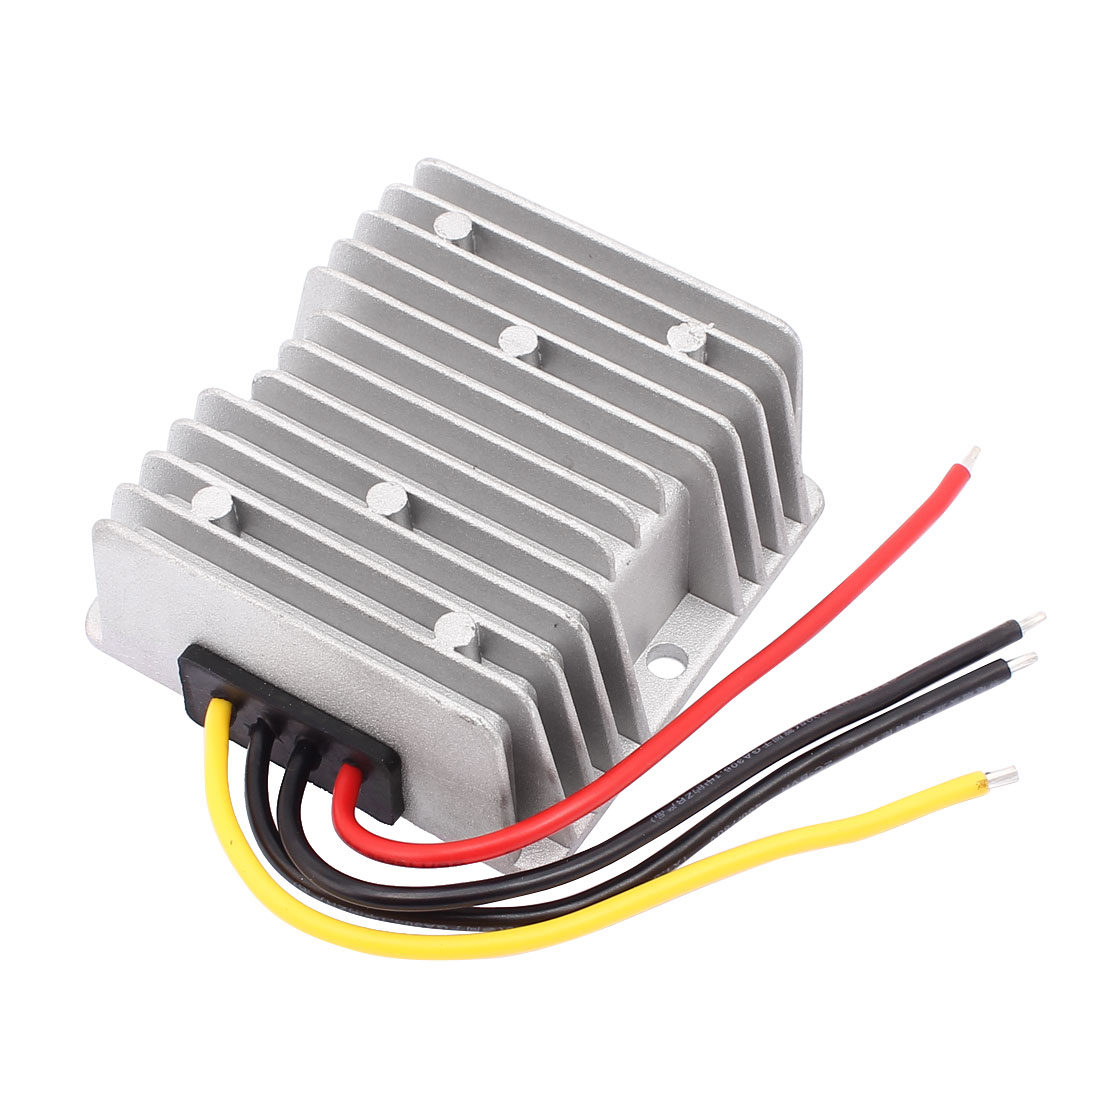 DC24V(18V-40V) Step-Down to DC13.8V 10A 138W Waterproof Power Converter Regulator Transformer